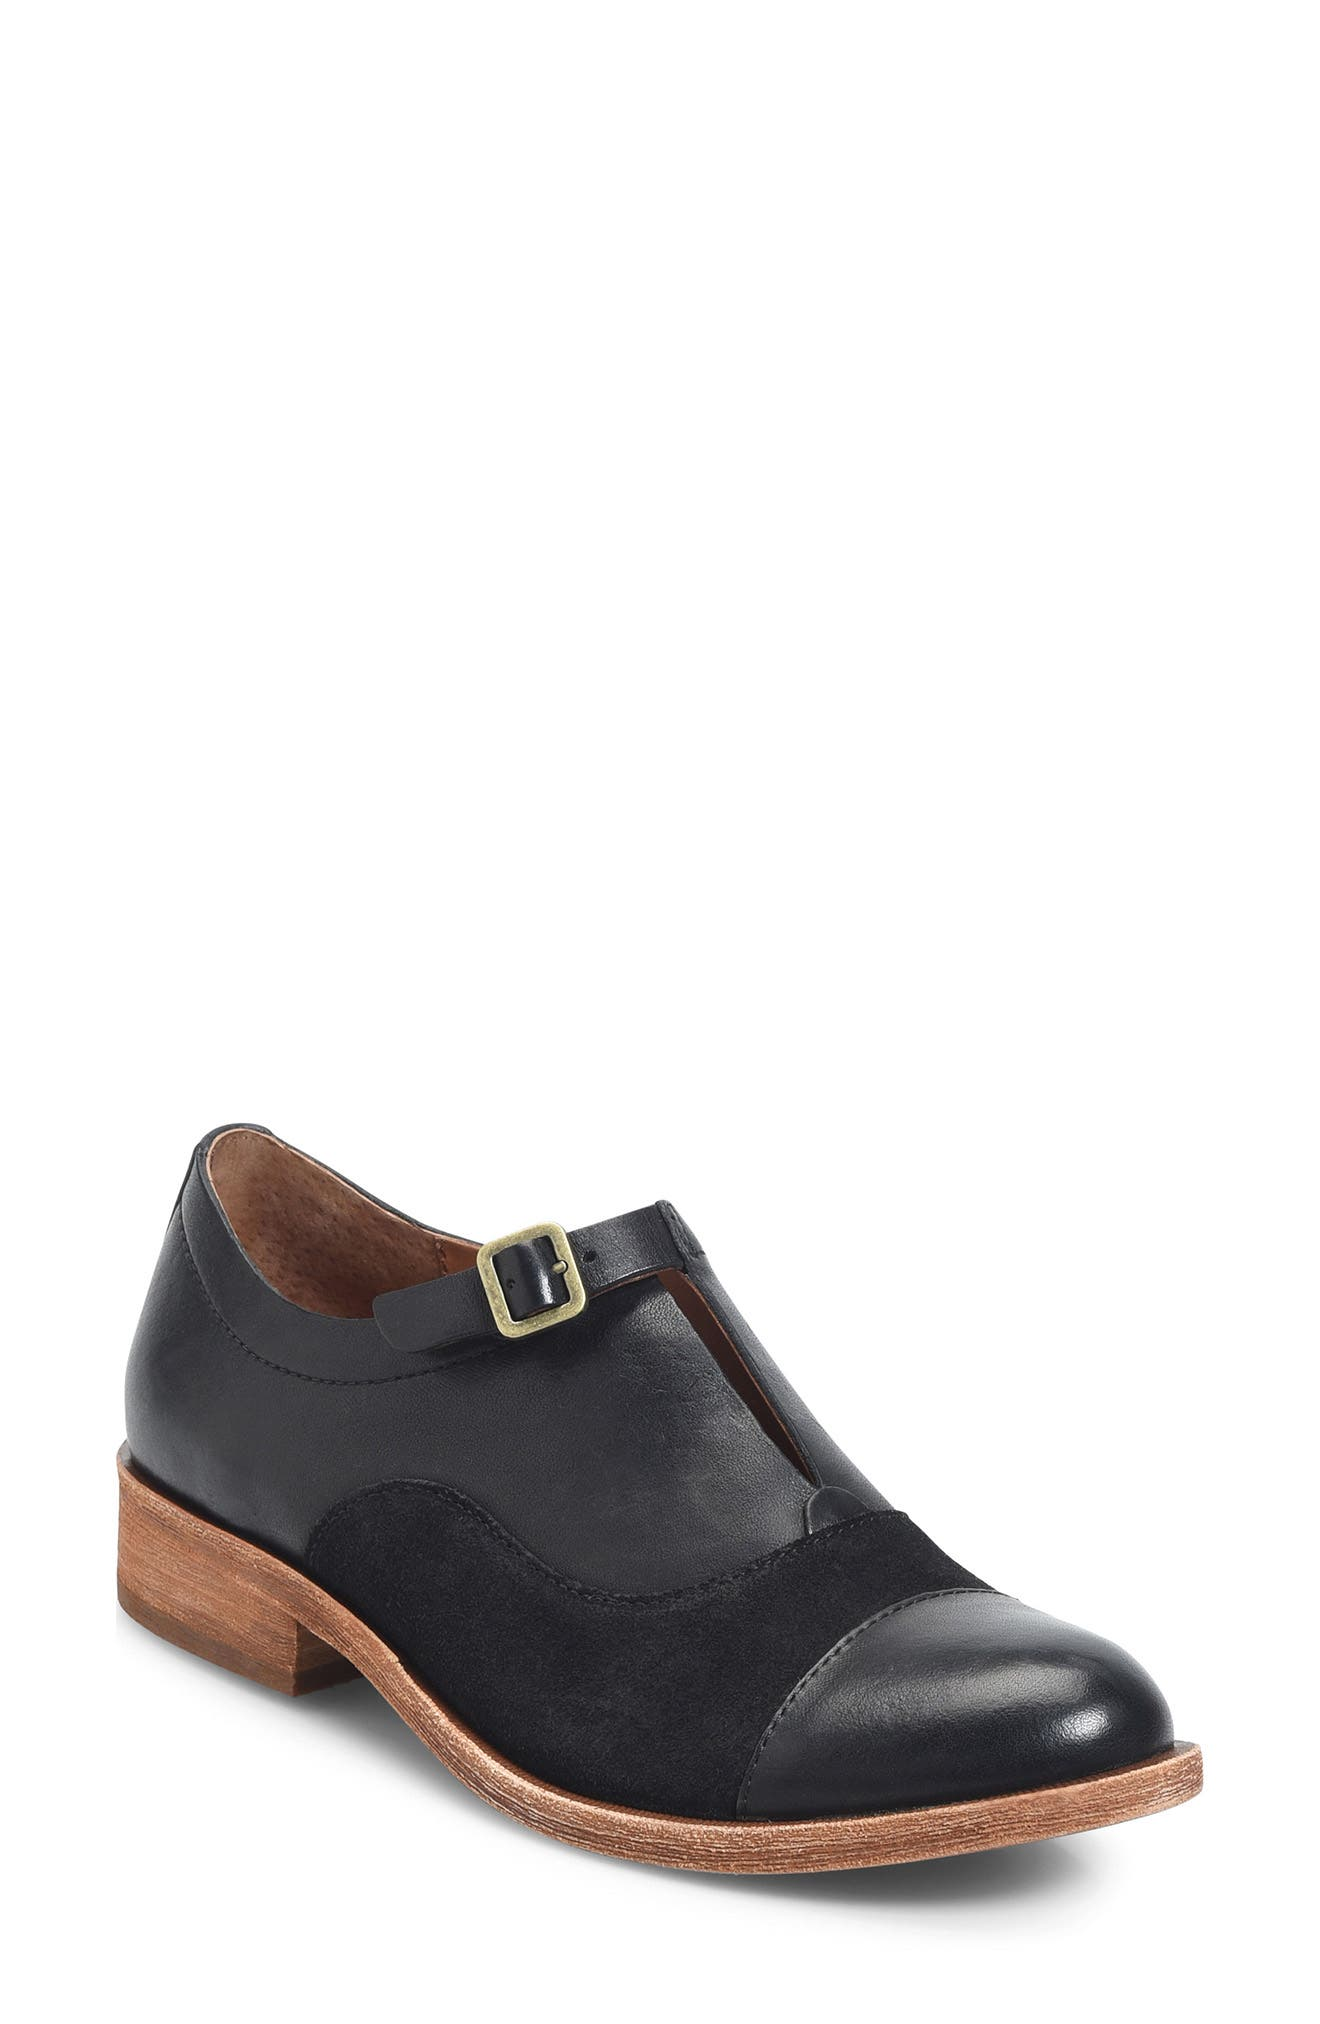 'Niseda' Oxford,                             Main thumbnail 1, color,                             Black Leather Suede Combo